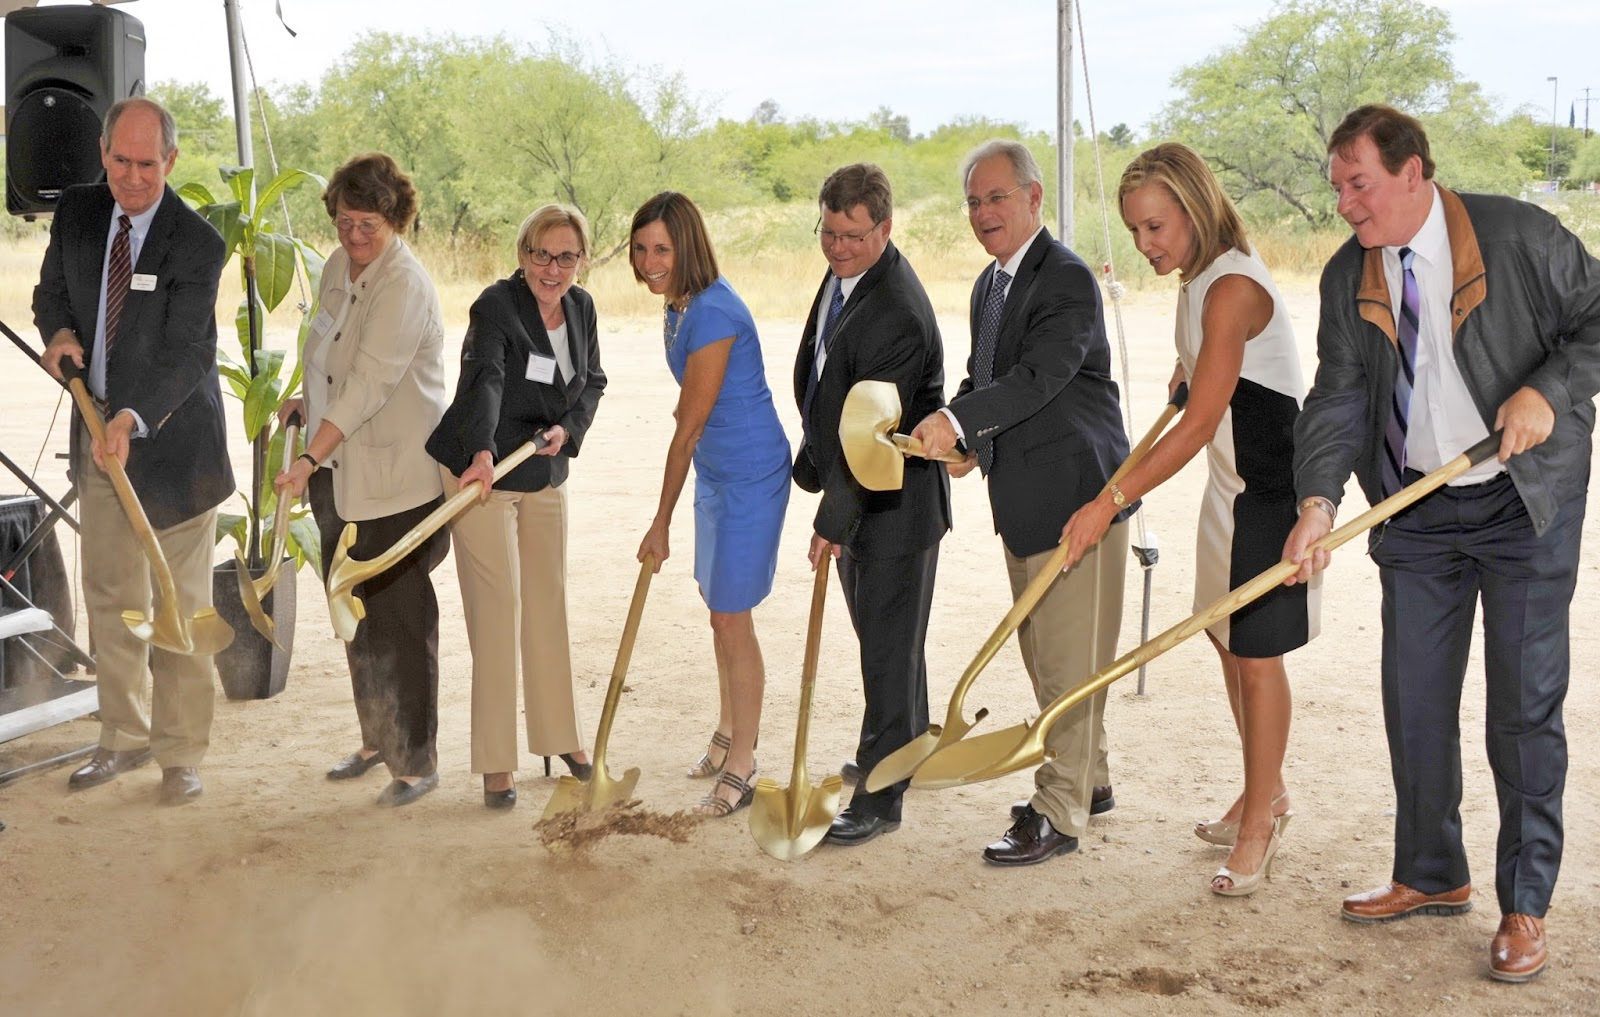 A groundbreaking ceremony took place today, at the future site of Santé of Tucson at 2040 N. Wilmot. Santé will offer post-hospital rehabilitation as well as short-term memory care at the 68,000 square foot facility. For more information, visit www.santecares.com 2040 N. Wilmot, Tucson, AZ 85712  480-563-2402 (until opening)